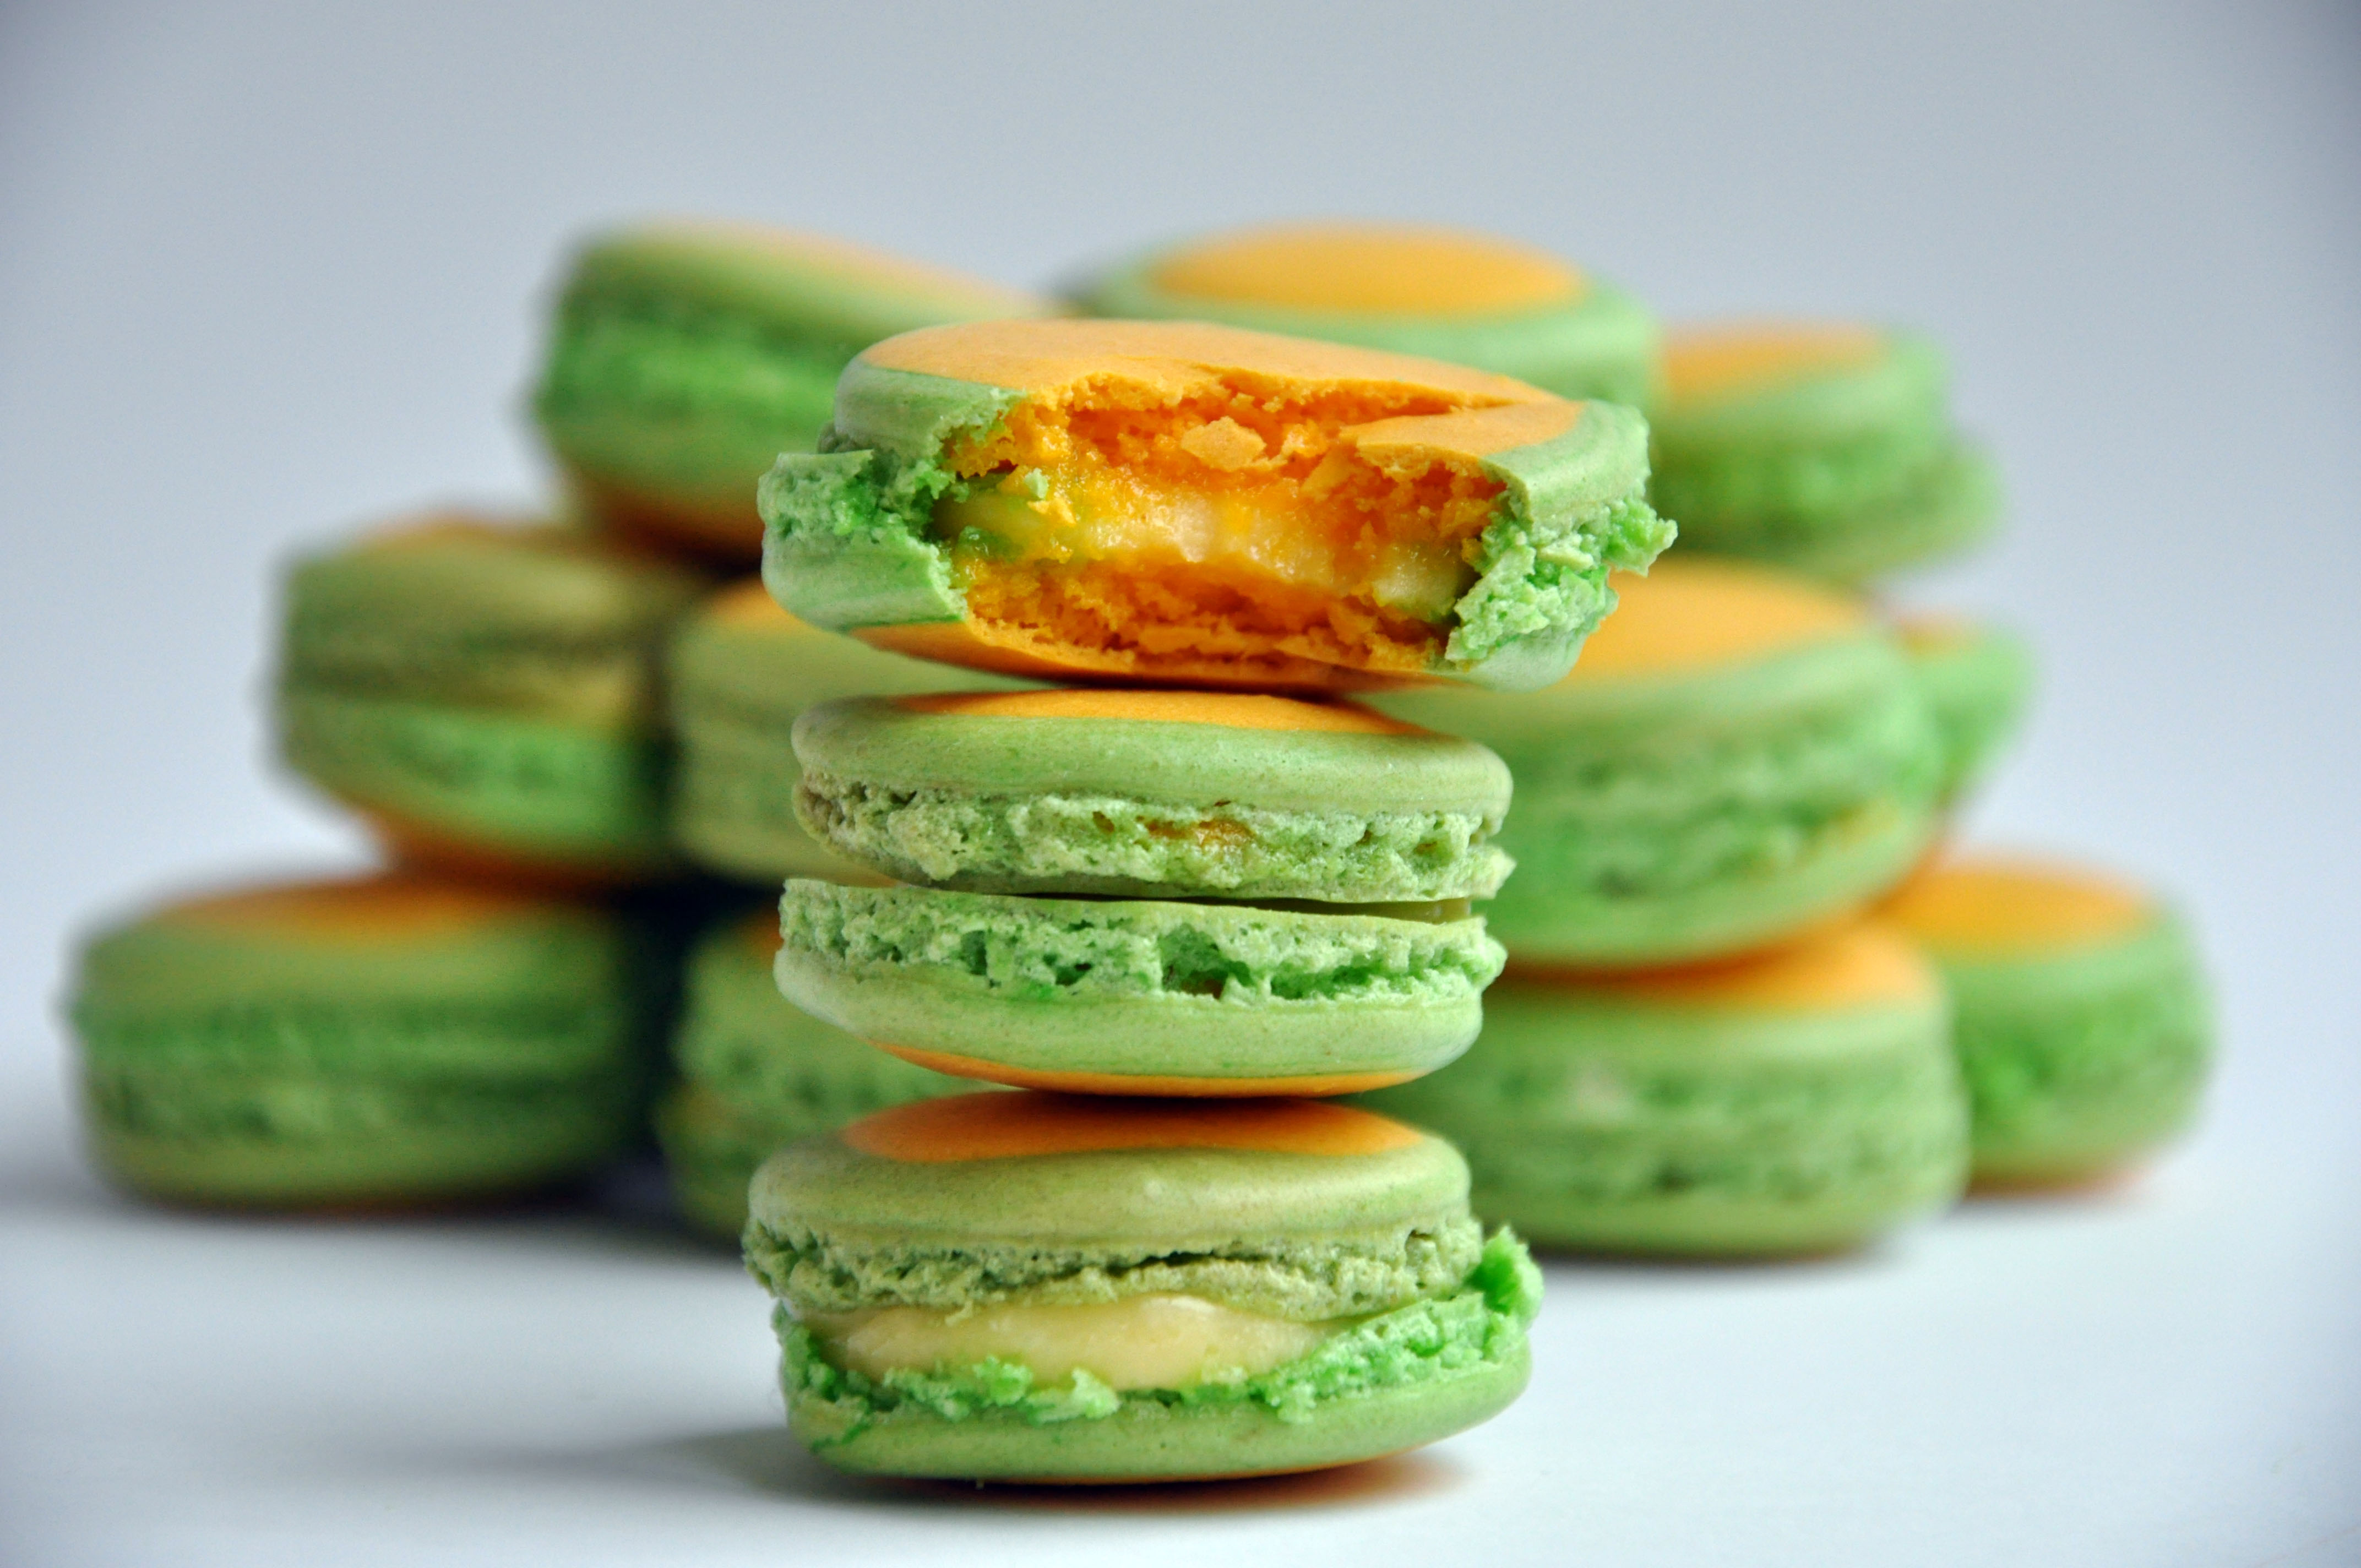 ... confidence to make your own macarons at home. The session will cover